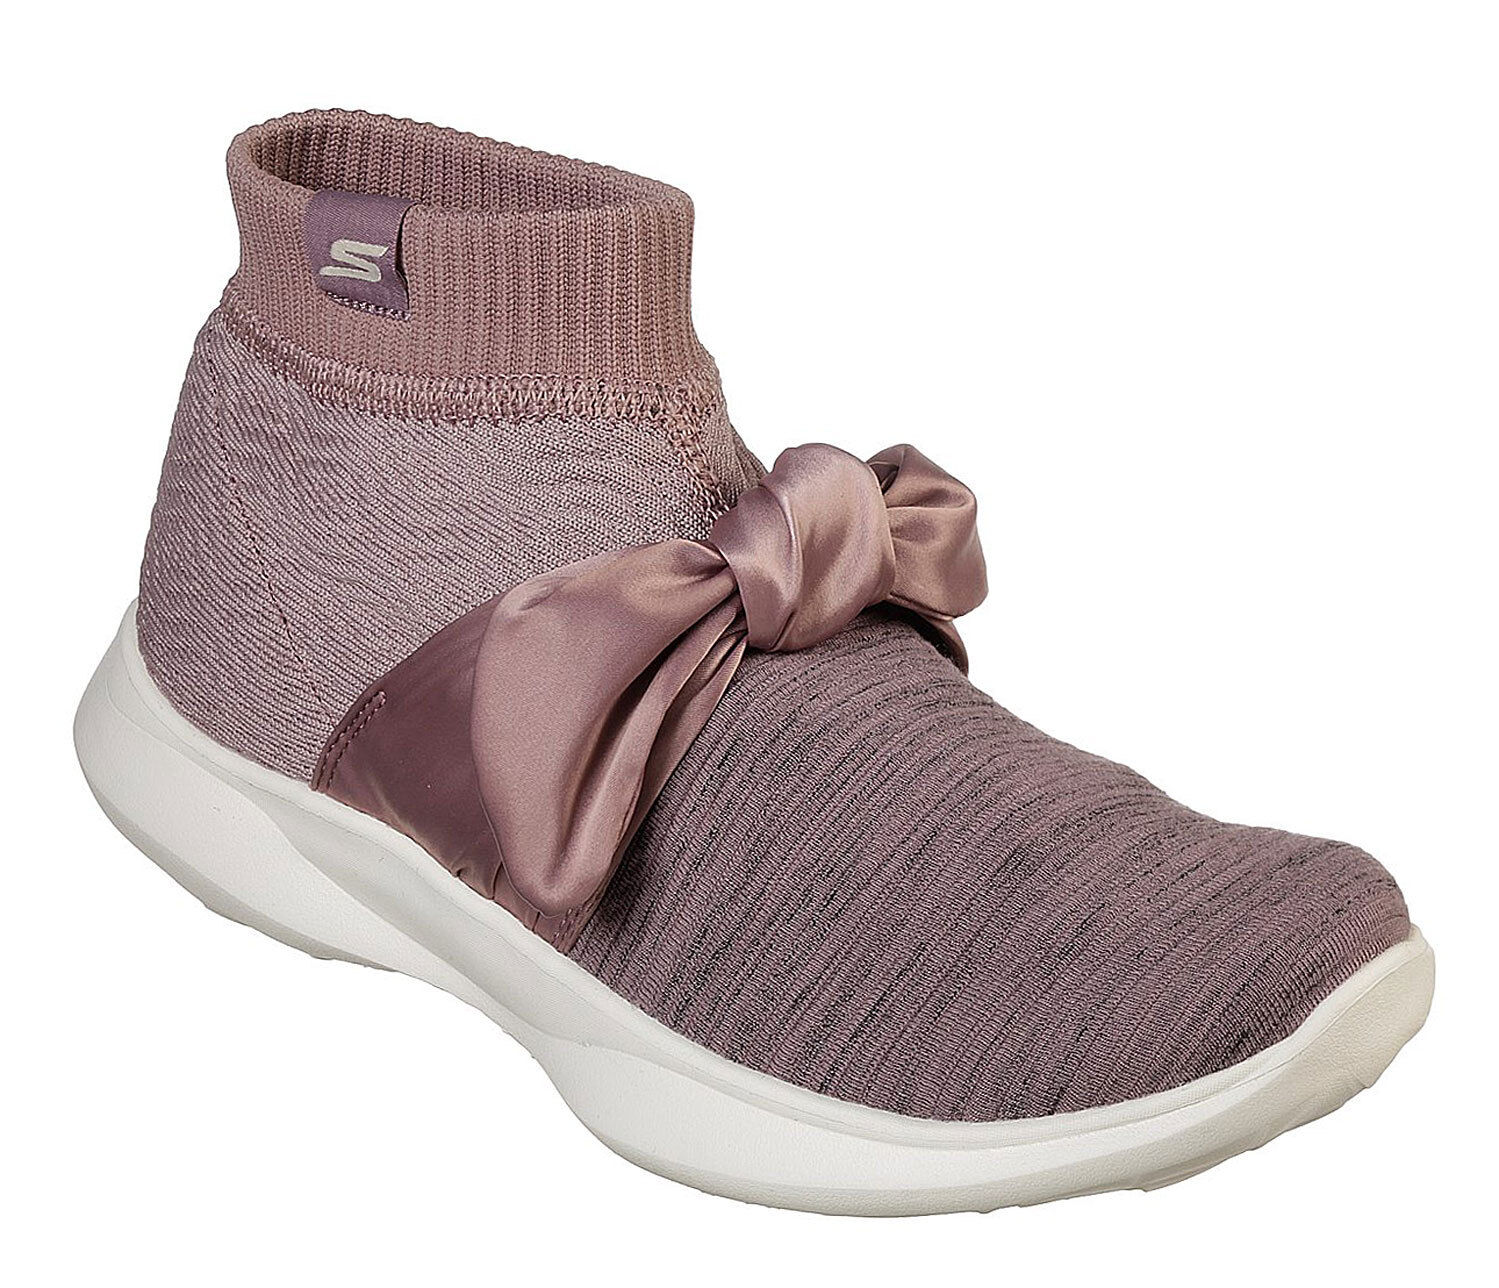 Skechers NEW pink You Serene Contour mauve pink NEW comfort fashion shoes trainers sz 3-8 4fca04